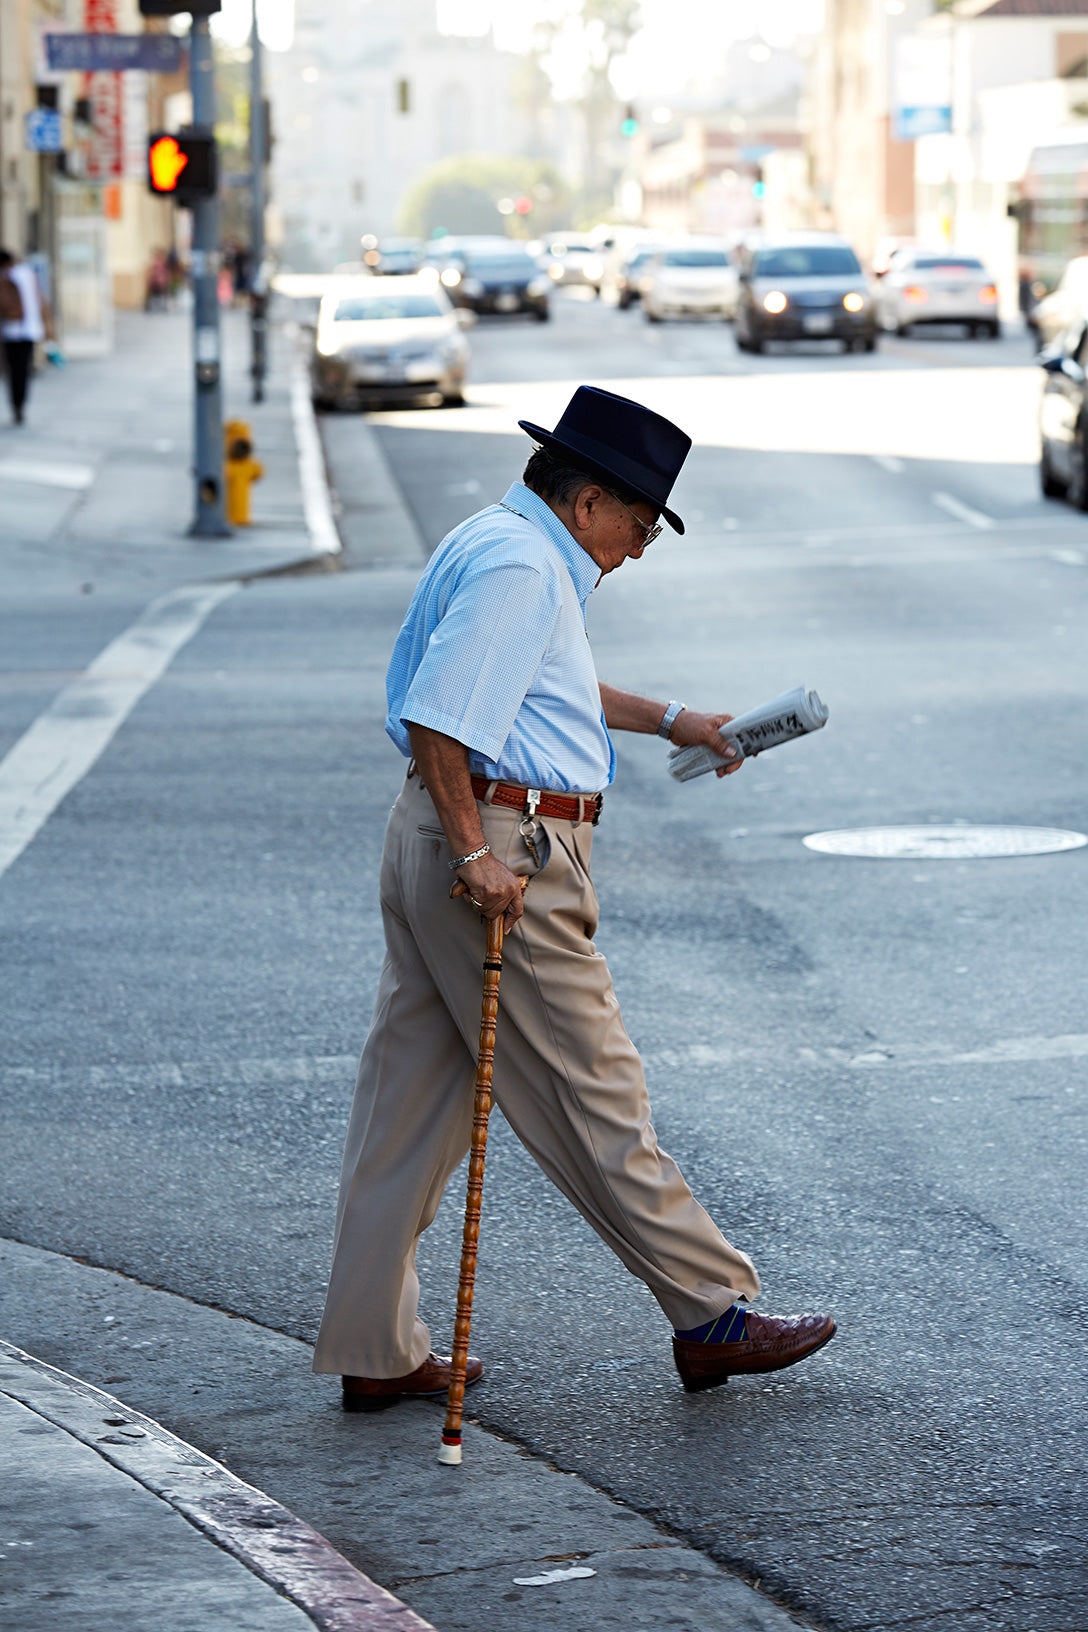 Person walking across street with cane and newspaper